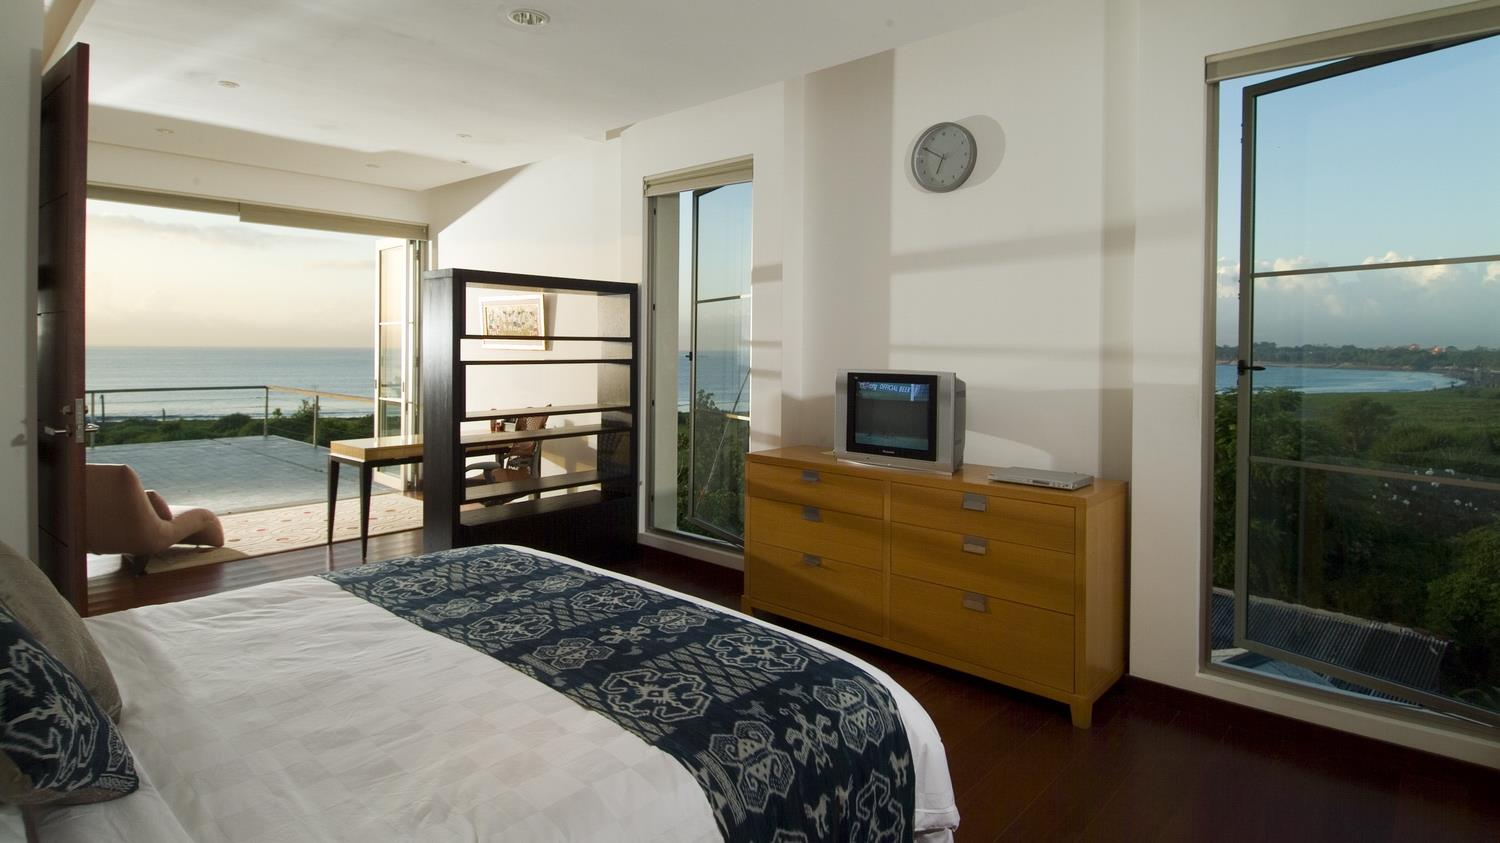 Bedroom with TV and View - Sanur Residence - Sanur, Bali